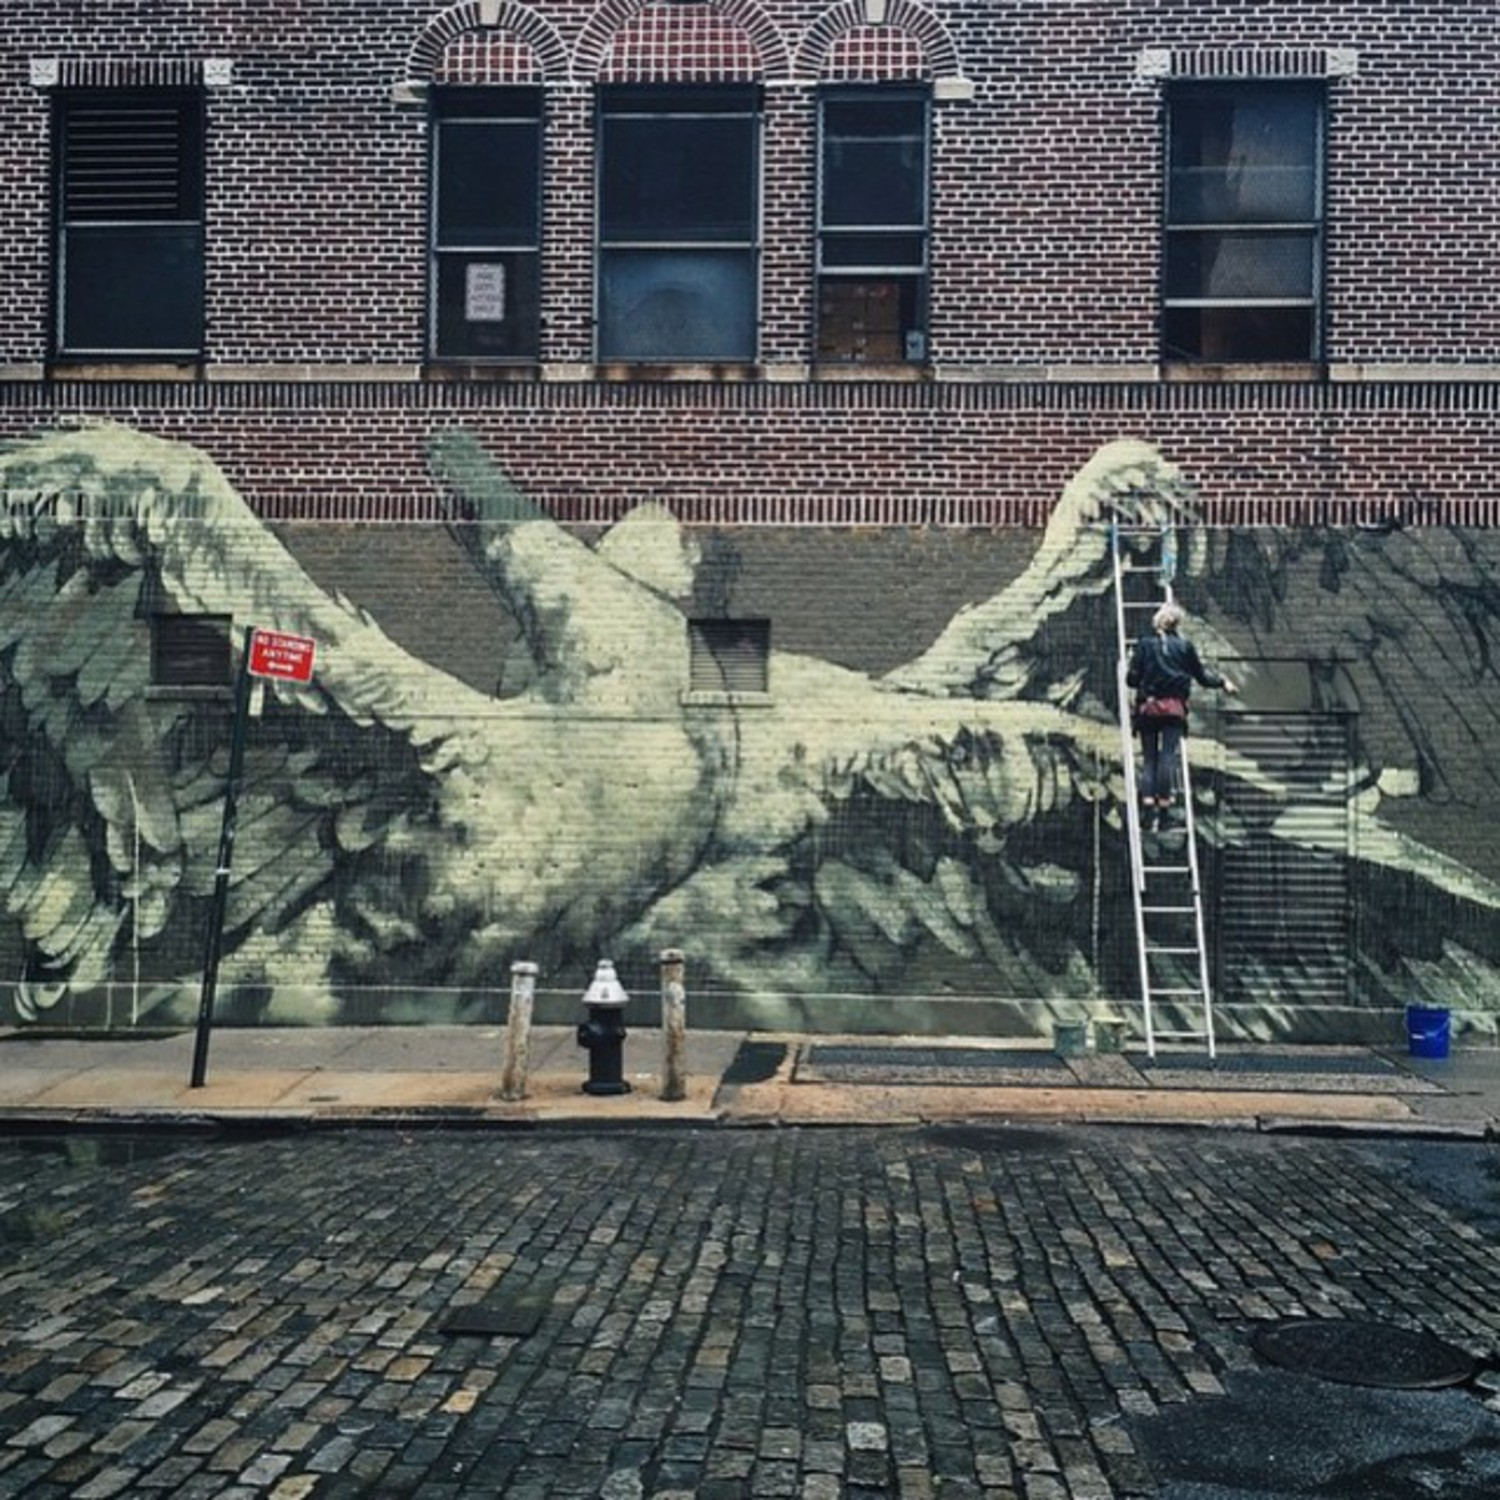 #inprogress #thepsychicpowerofanimals #wallfour #nyc #Manhattan #faith47 #dayten #swanlife regram @thadotman